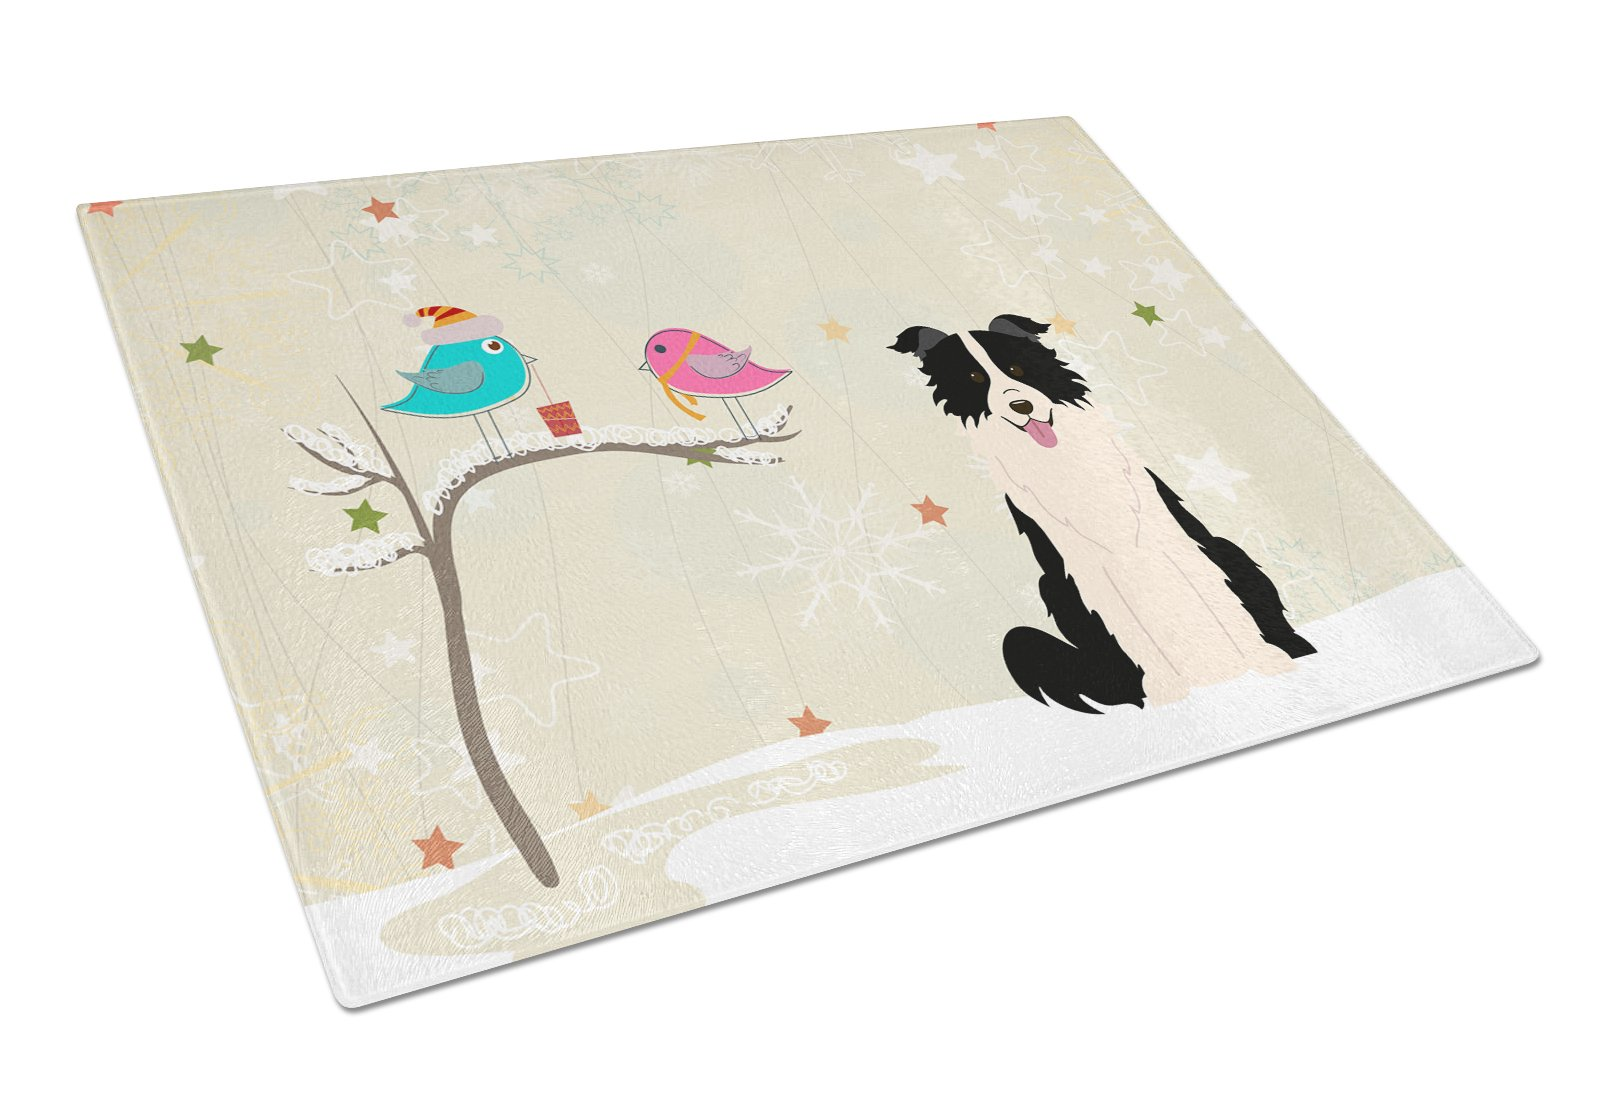 Christmas Presents between Friends Border Collie Black White Glass Cutting Board Large BB2590LCB by Caroline's Treasures